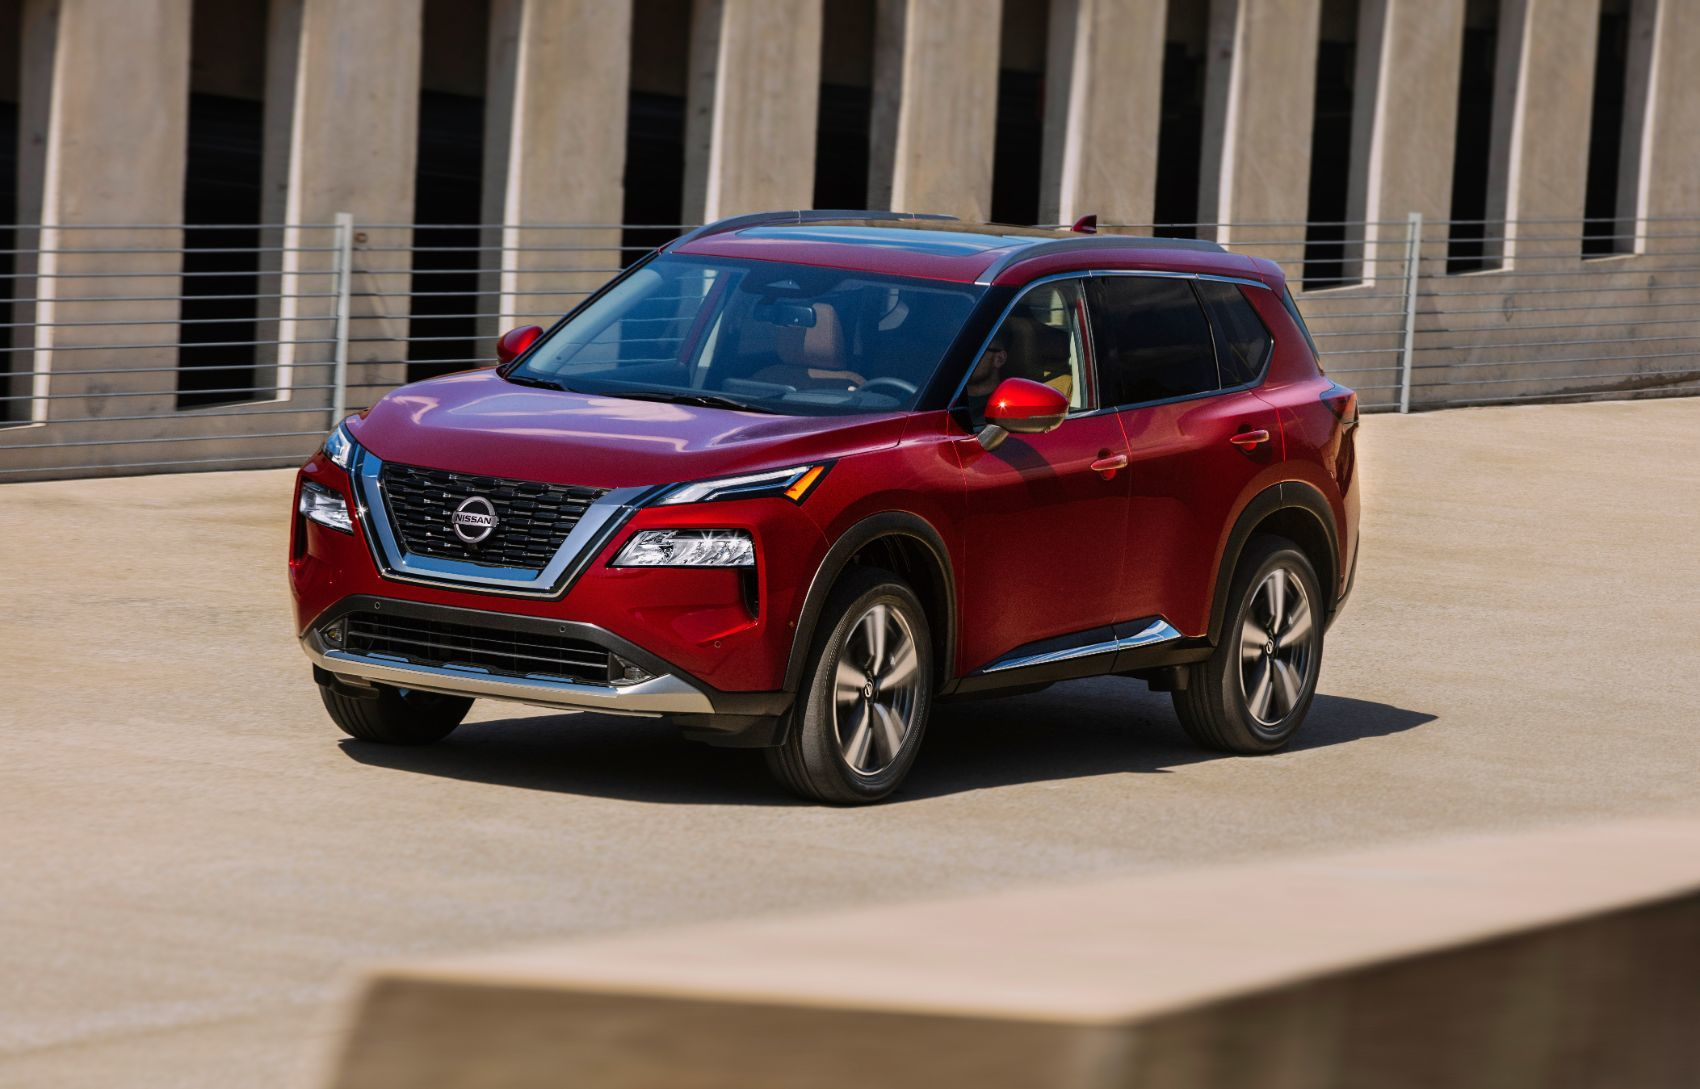 2021 Nissan Rogue: Complete Overview of This Newly Redesigned Crossover